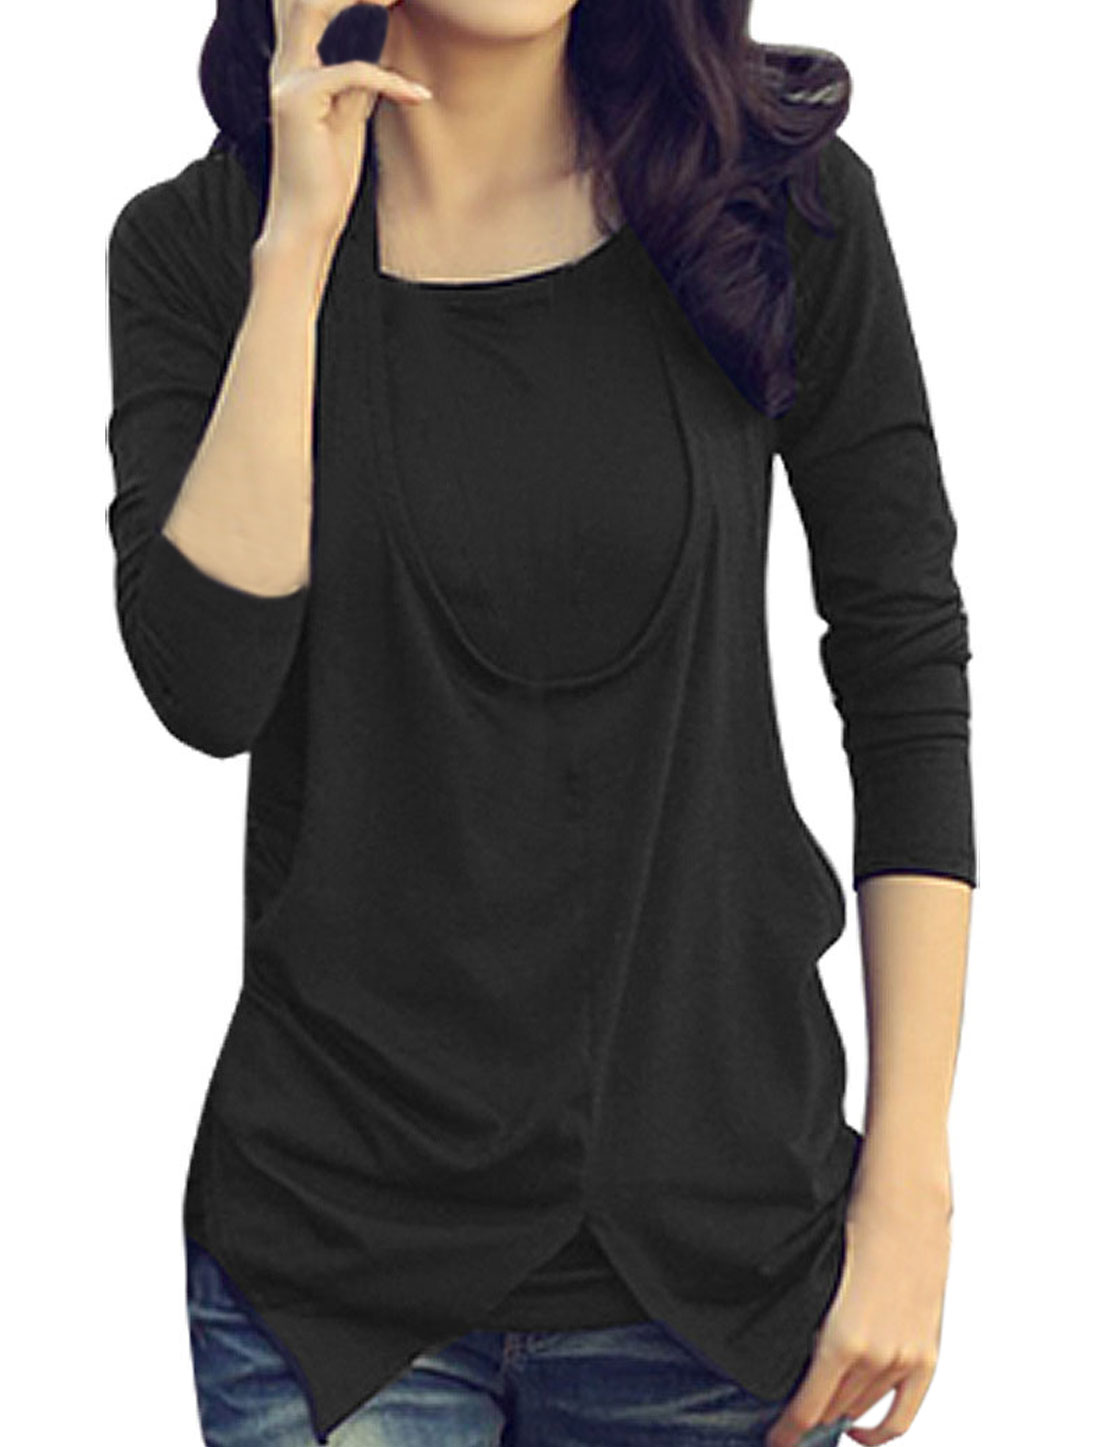 Size XS Layered Shirts Style Halter Front Round Neck Black Shirt for Women